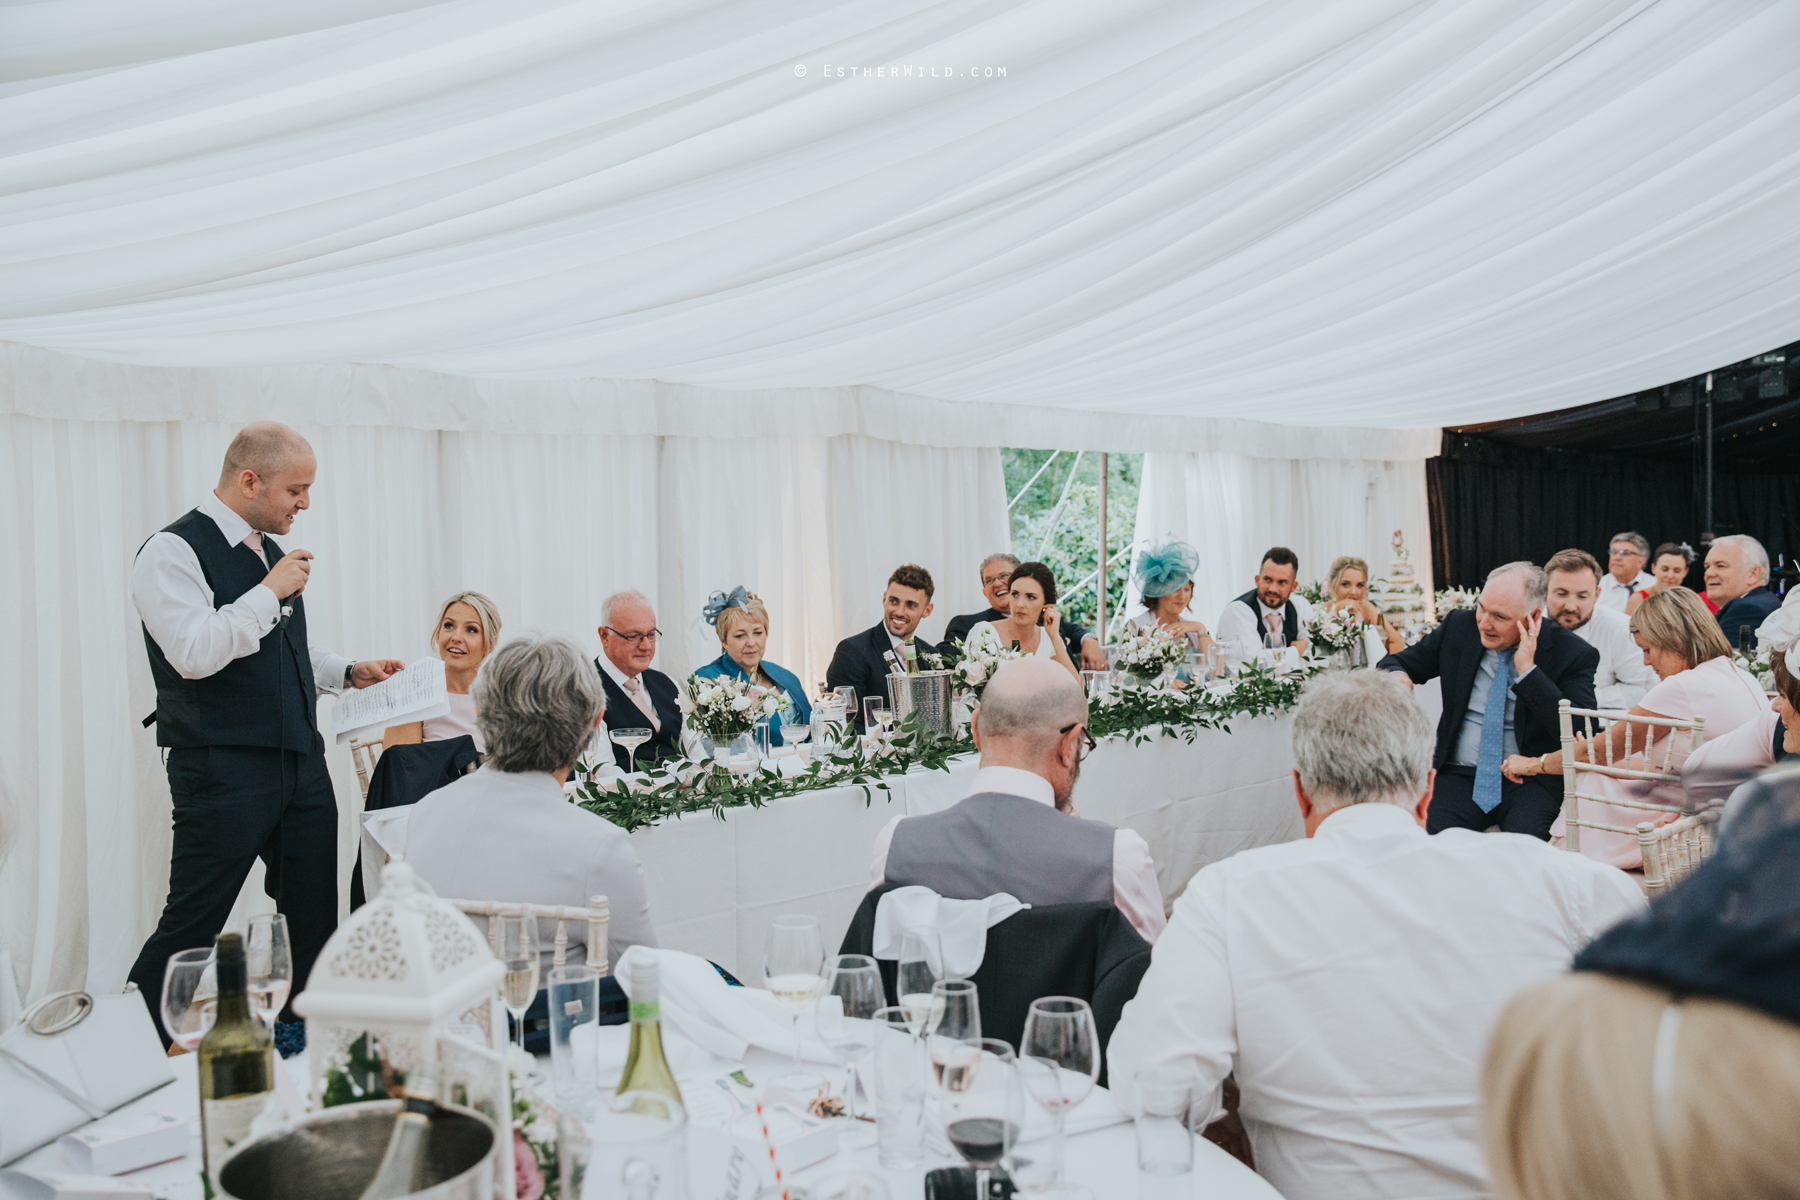 Wootton_Wedding_Copyright_Esther_Wild_Photographer_IMG_2895.jpg